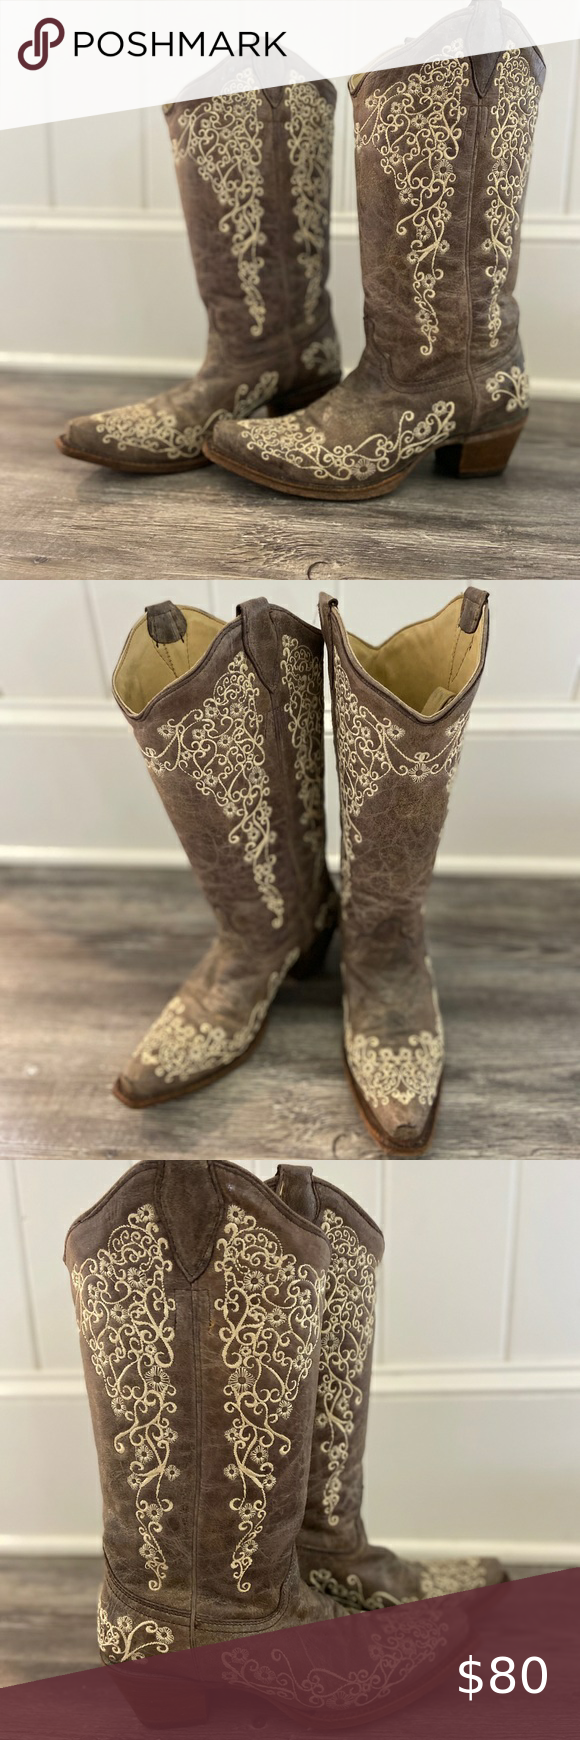 Western boots, Wide calf boots